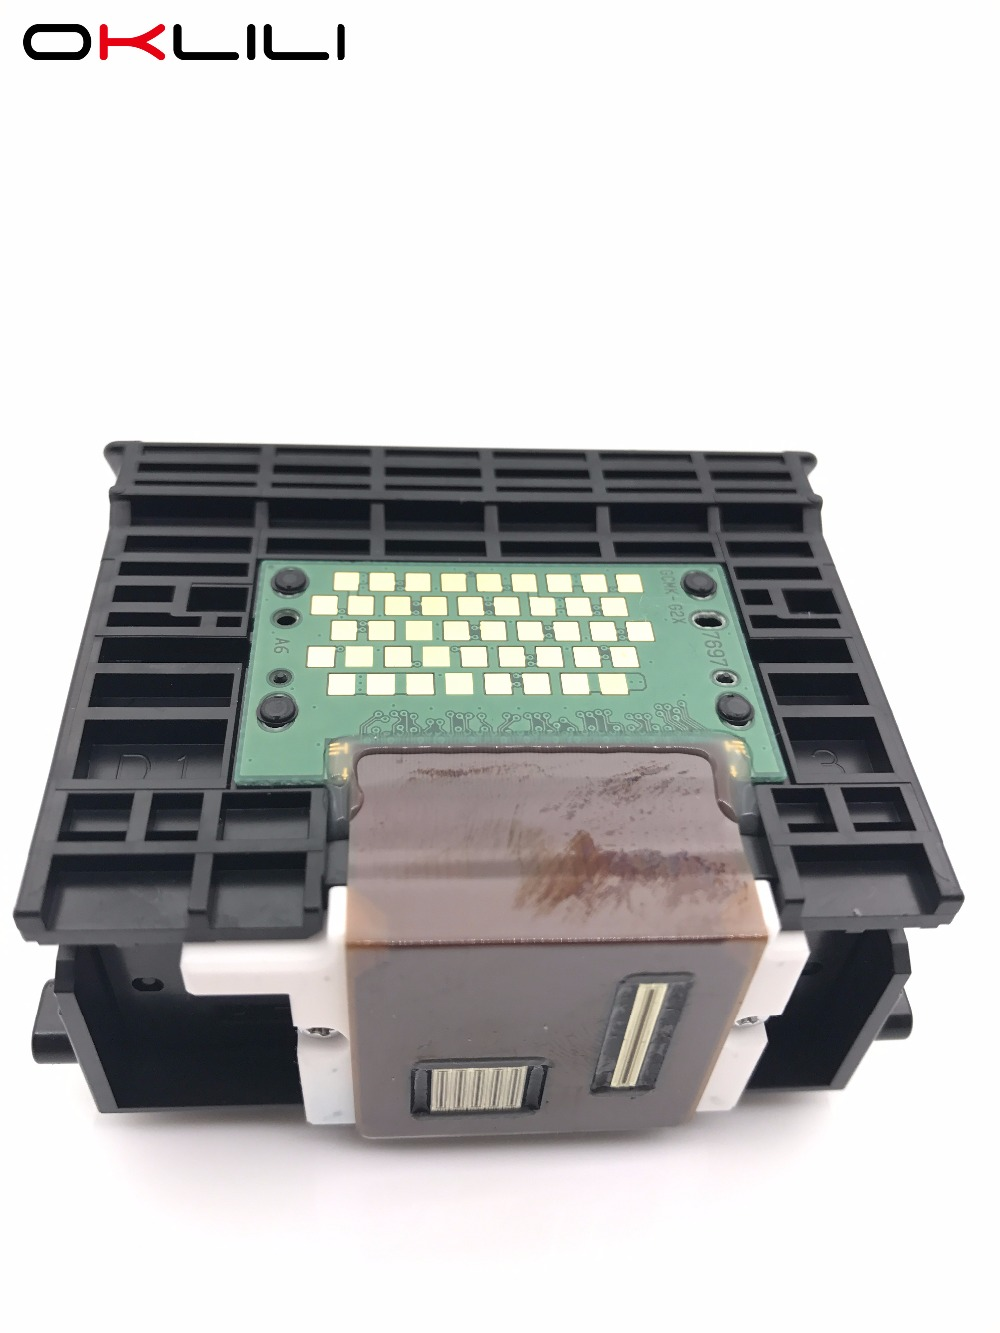 OKLILI ORIGINAL QY6-0070 QY6-0070-000 Printhead Print Head Printer Head for Canon MP510 MP520 MX700 iP3300 iP3500 print head qy6 0042 printhead for canon i560 i850 ip3000 mp730 ix5000